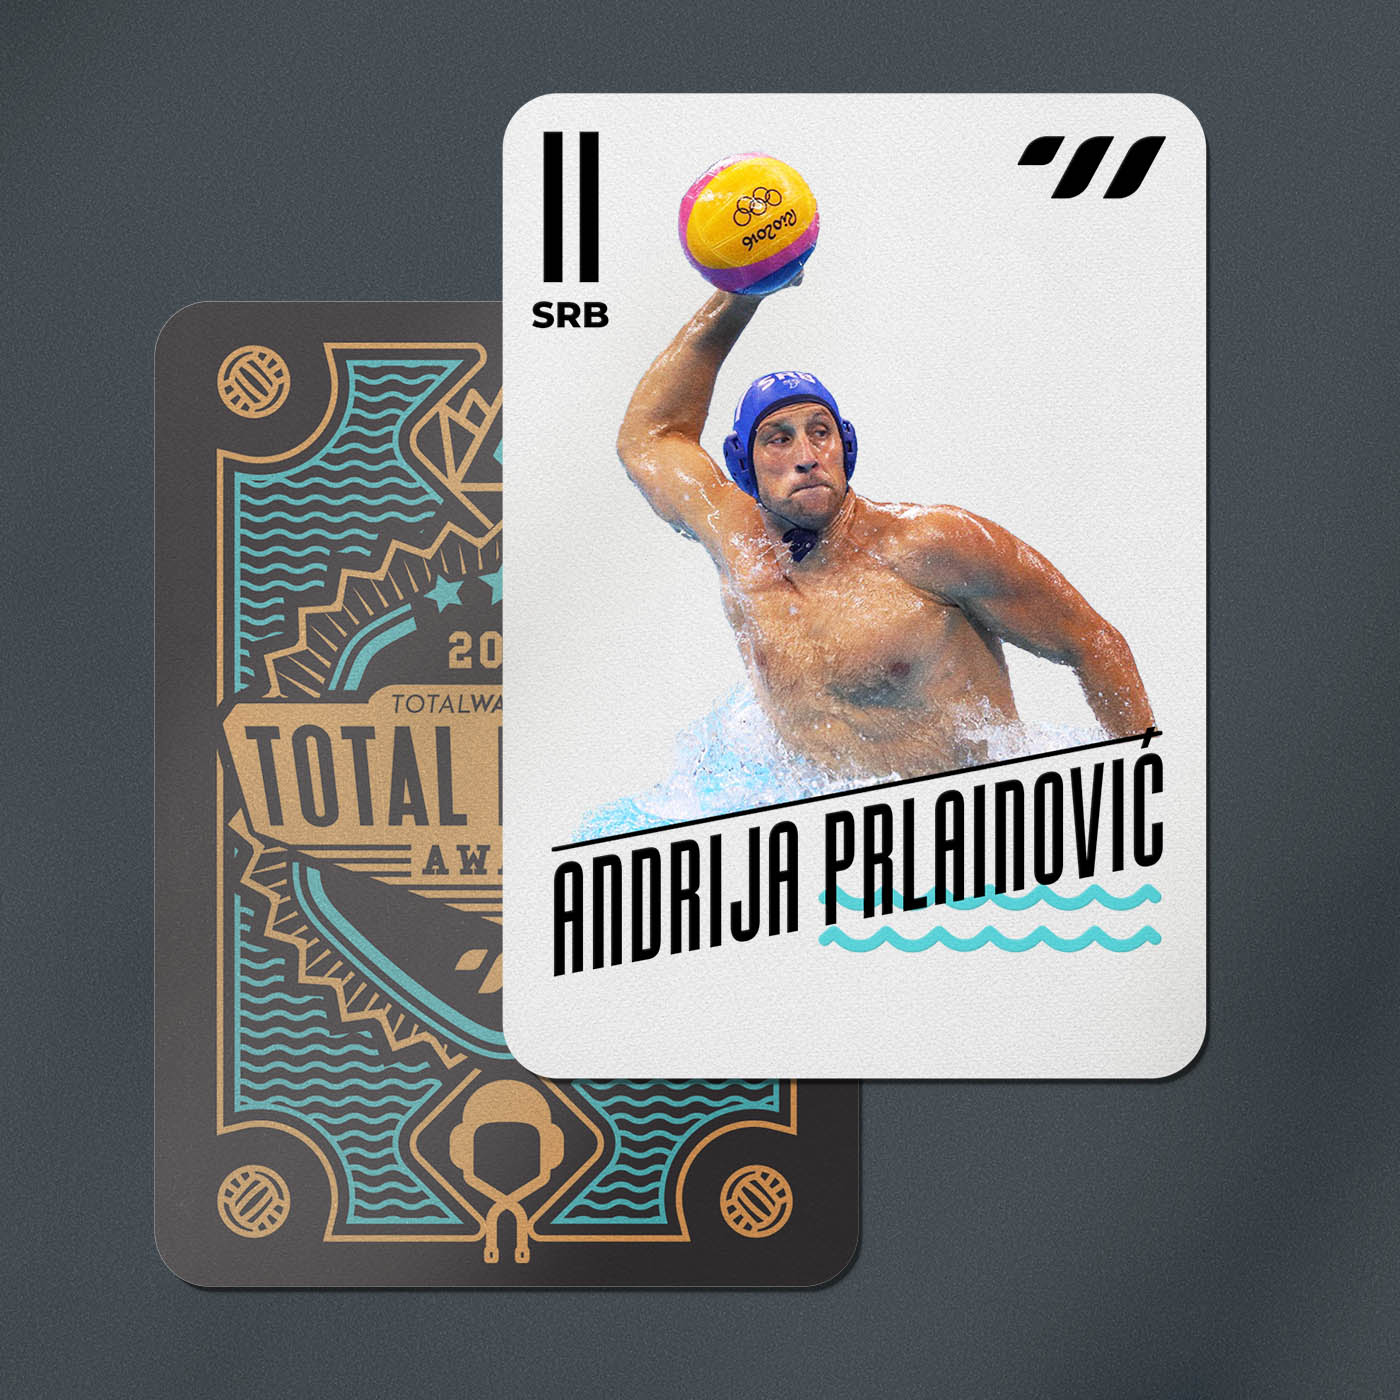 LEFT SIDE - Andrija Prlainovic (SRB)